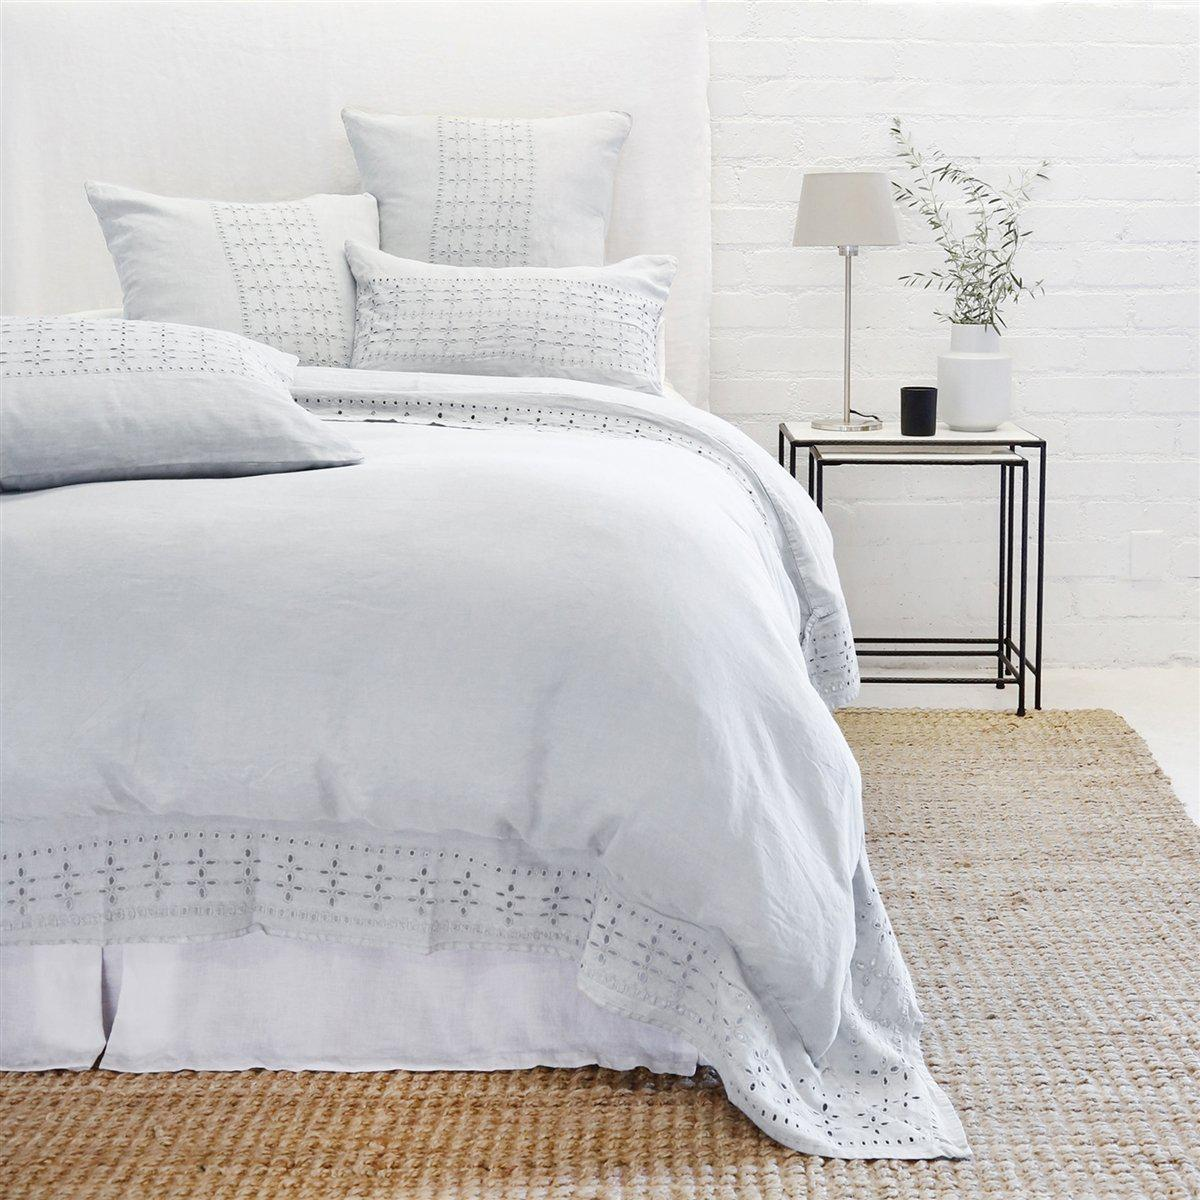 Layla Sham by Pom Pom at Home-Bed & Bath-Standard-Ocean-A Cottage in the City